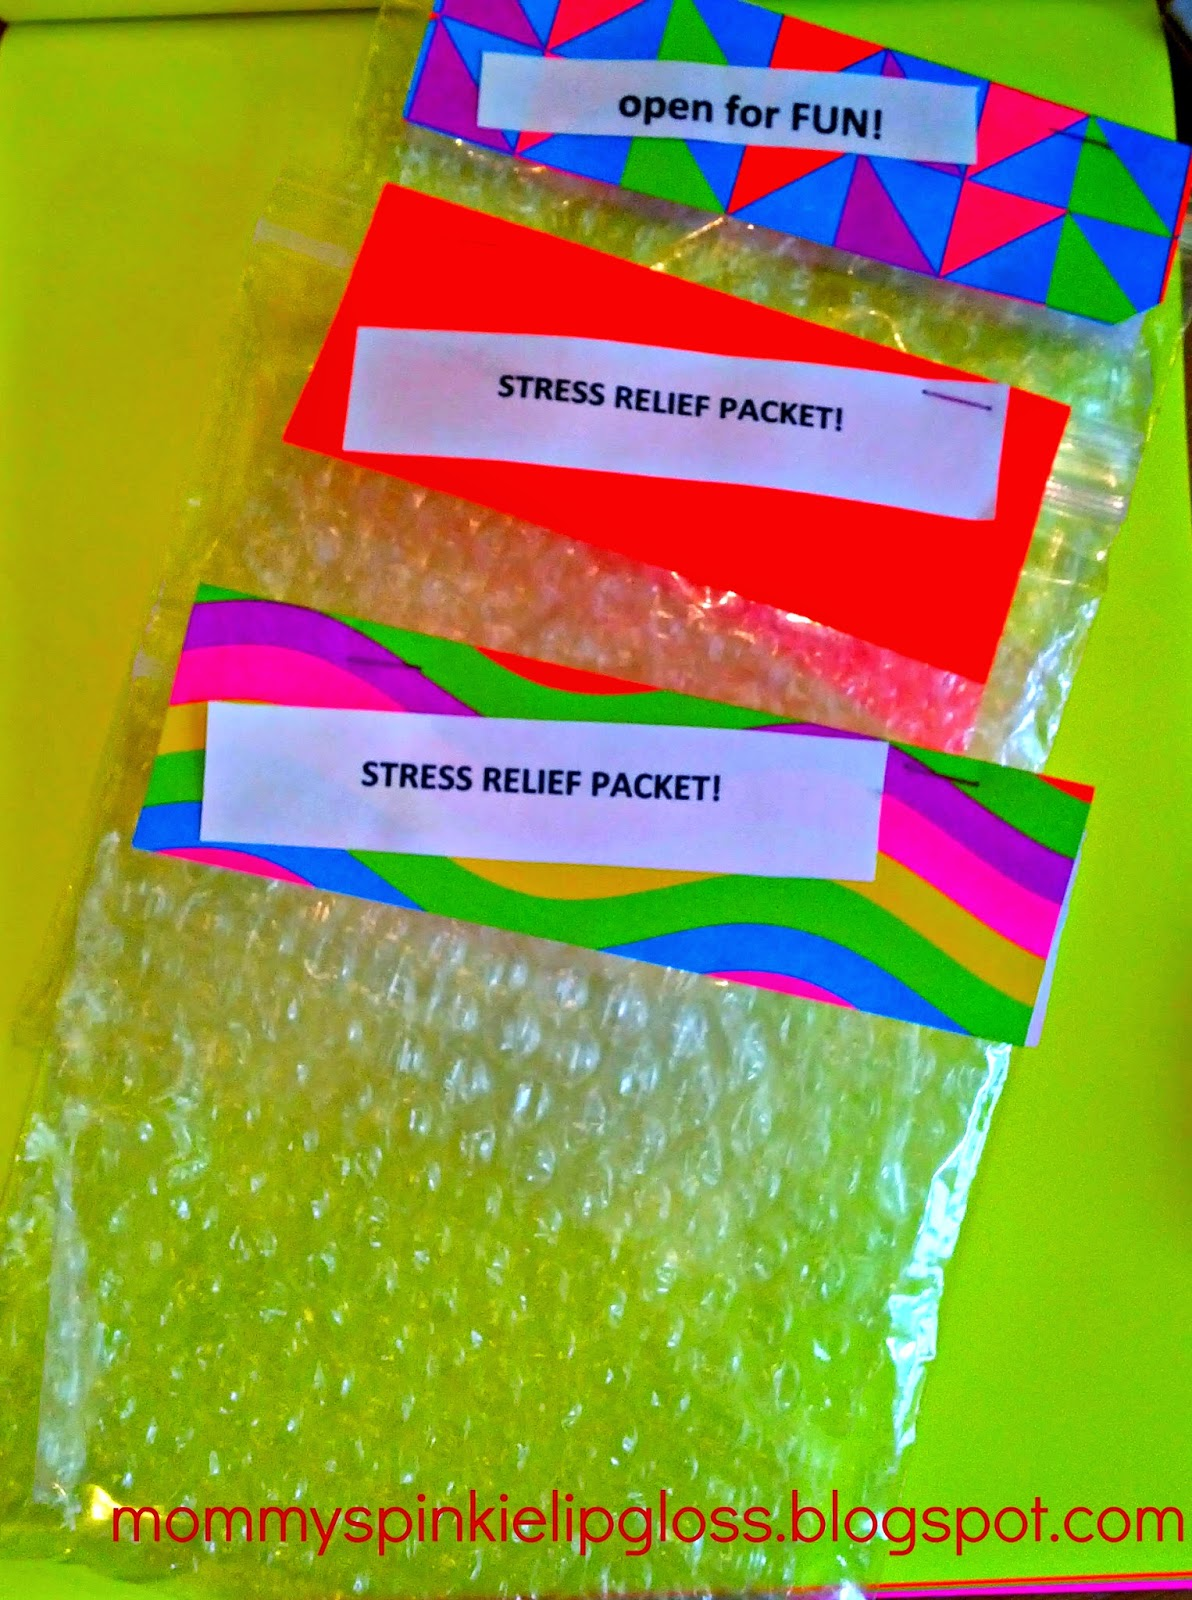 bubble wrap crafts stress relief ideas from MommysPinkieLipgloss.blogspot.com